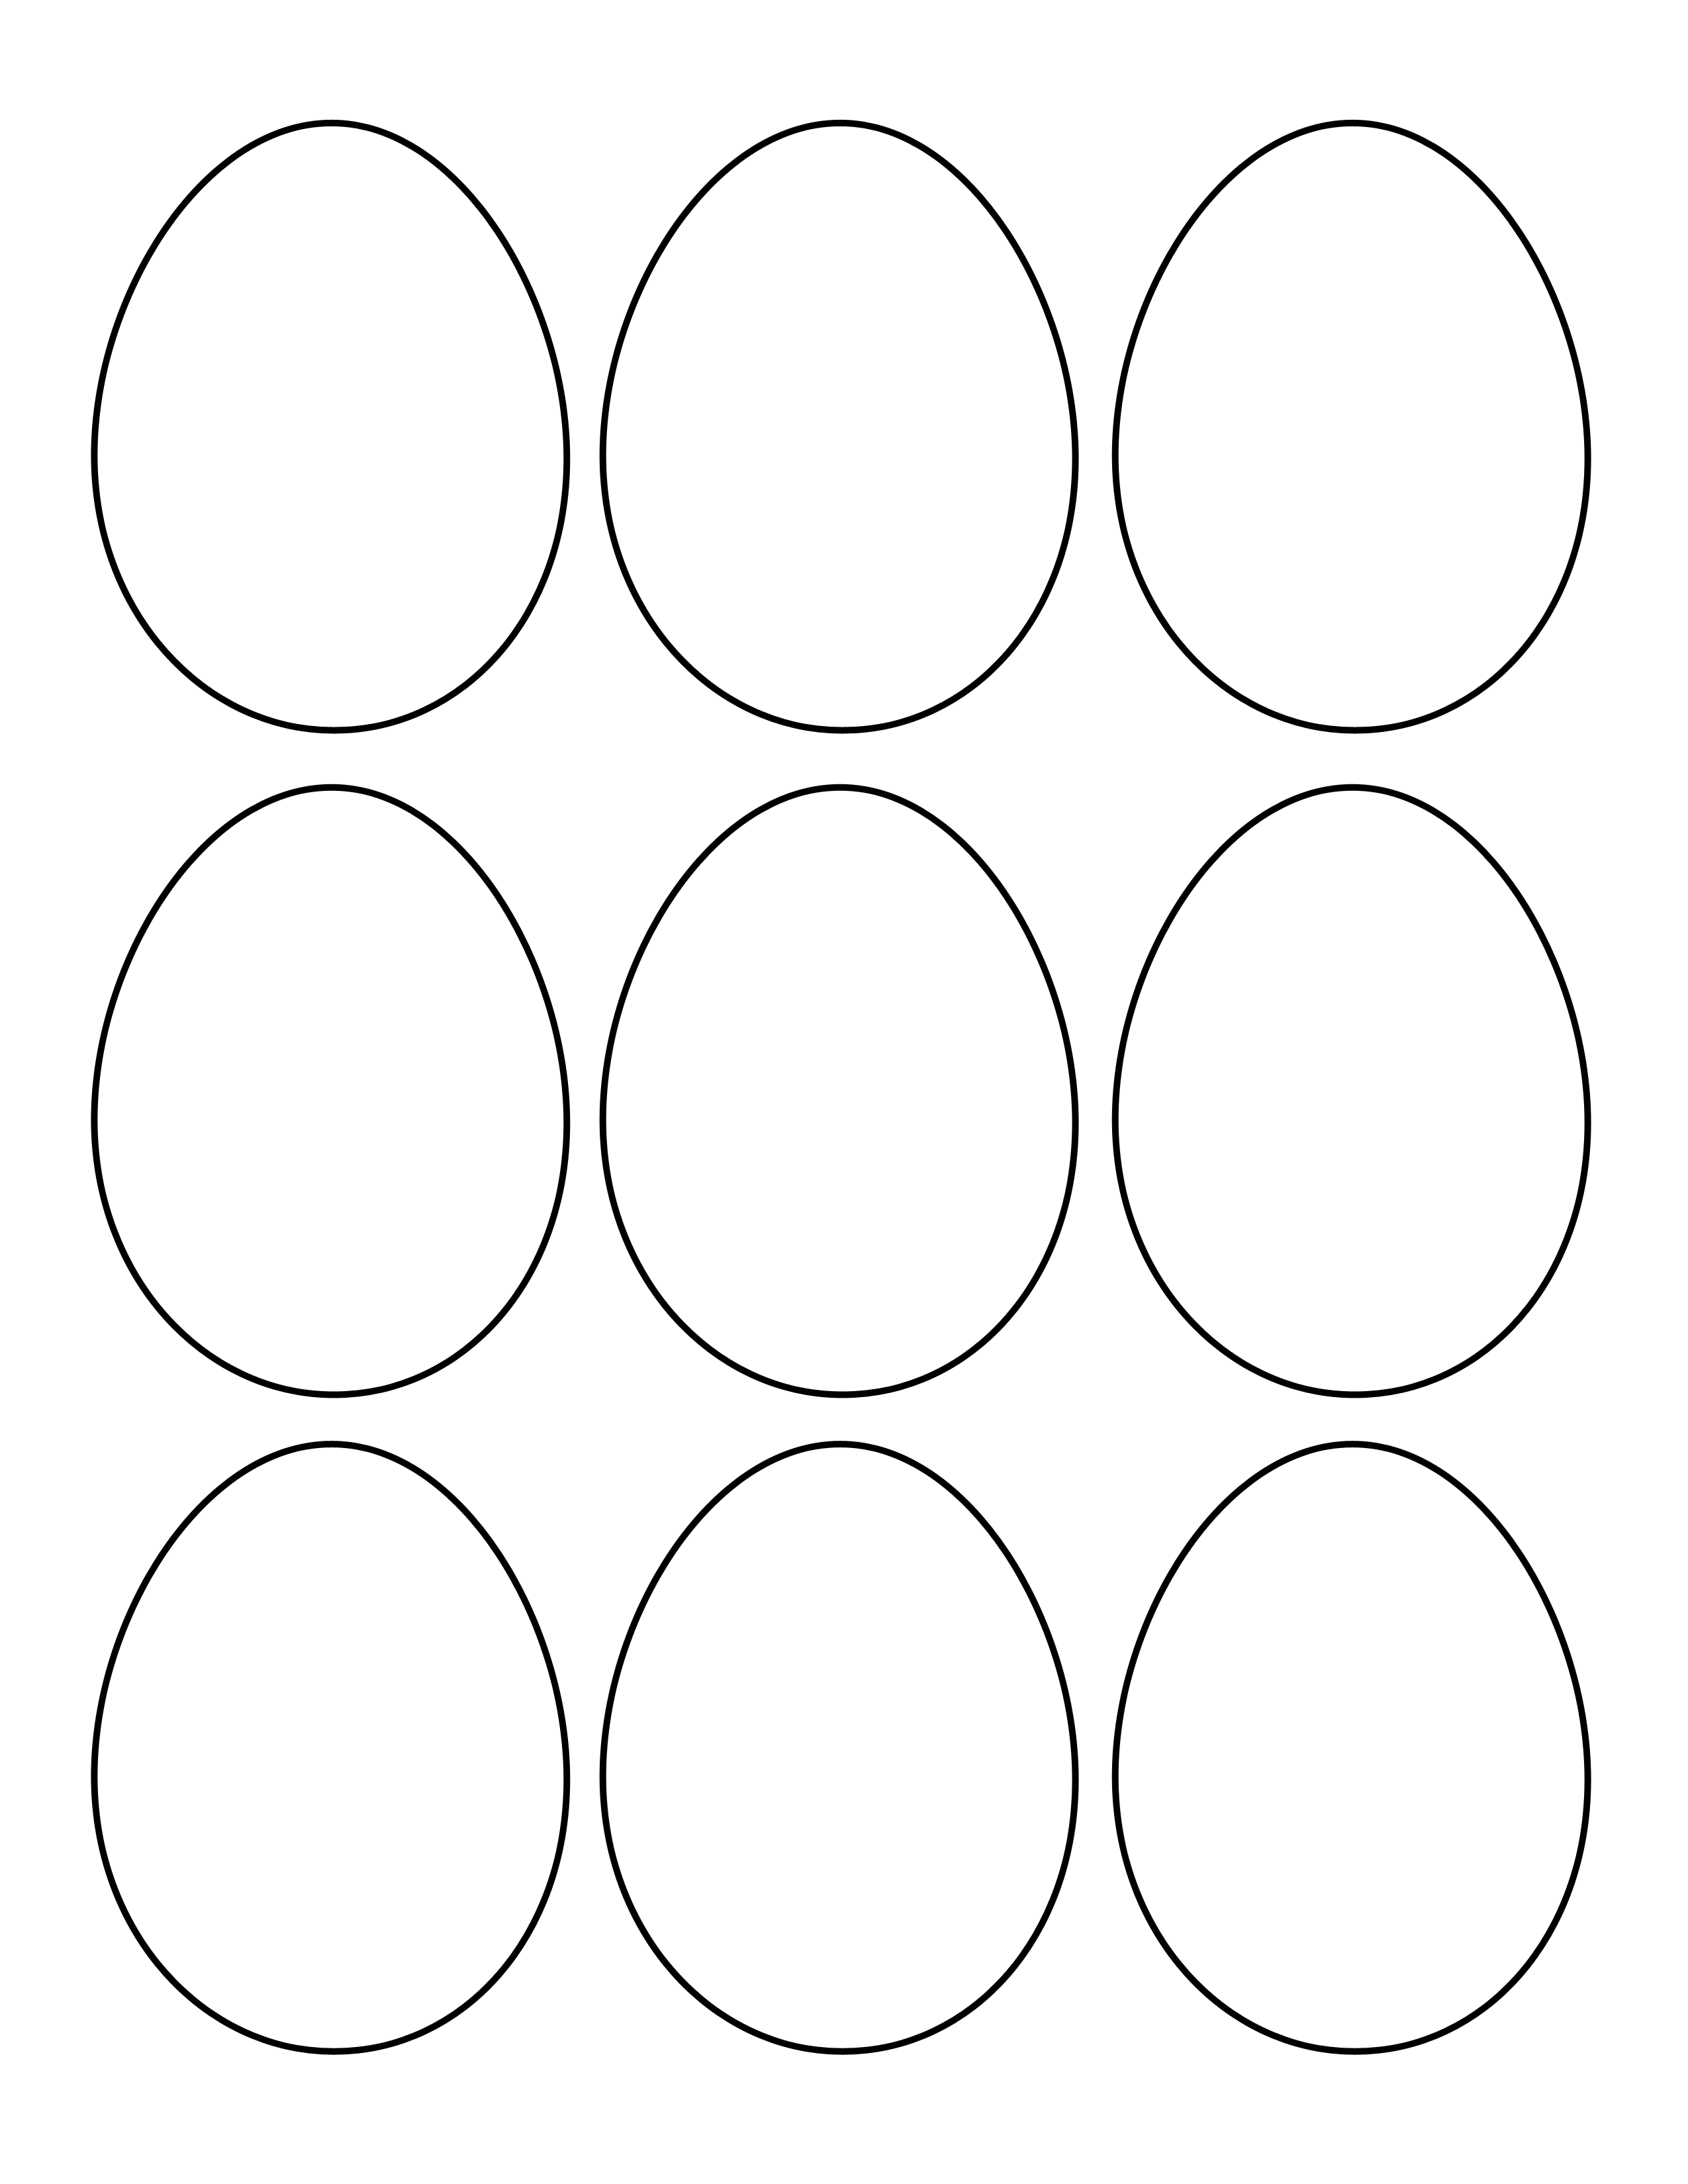 Egg Shape Templates To Print